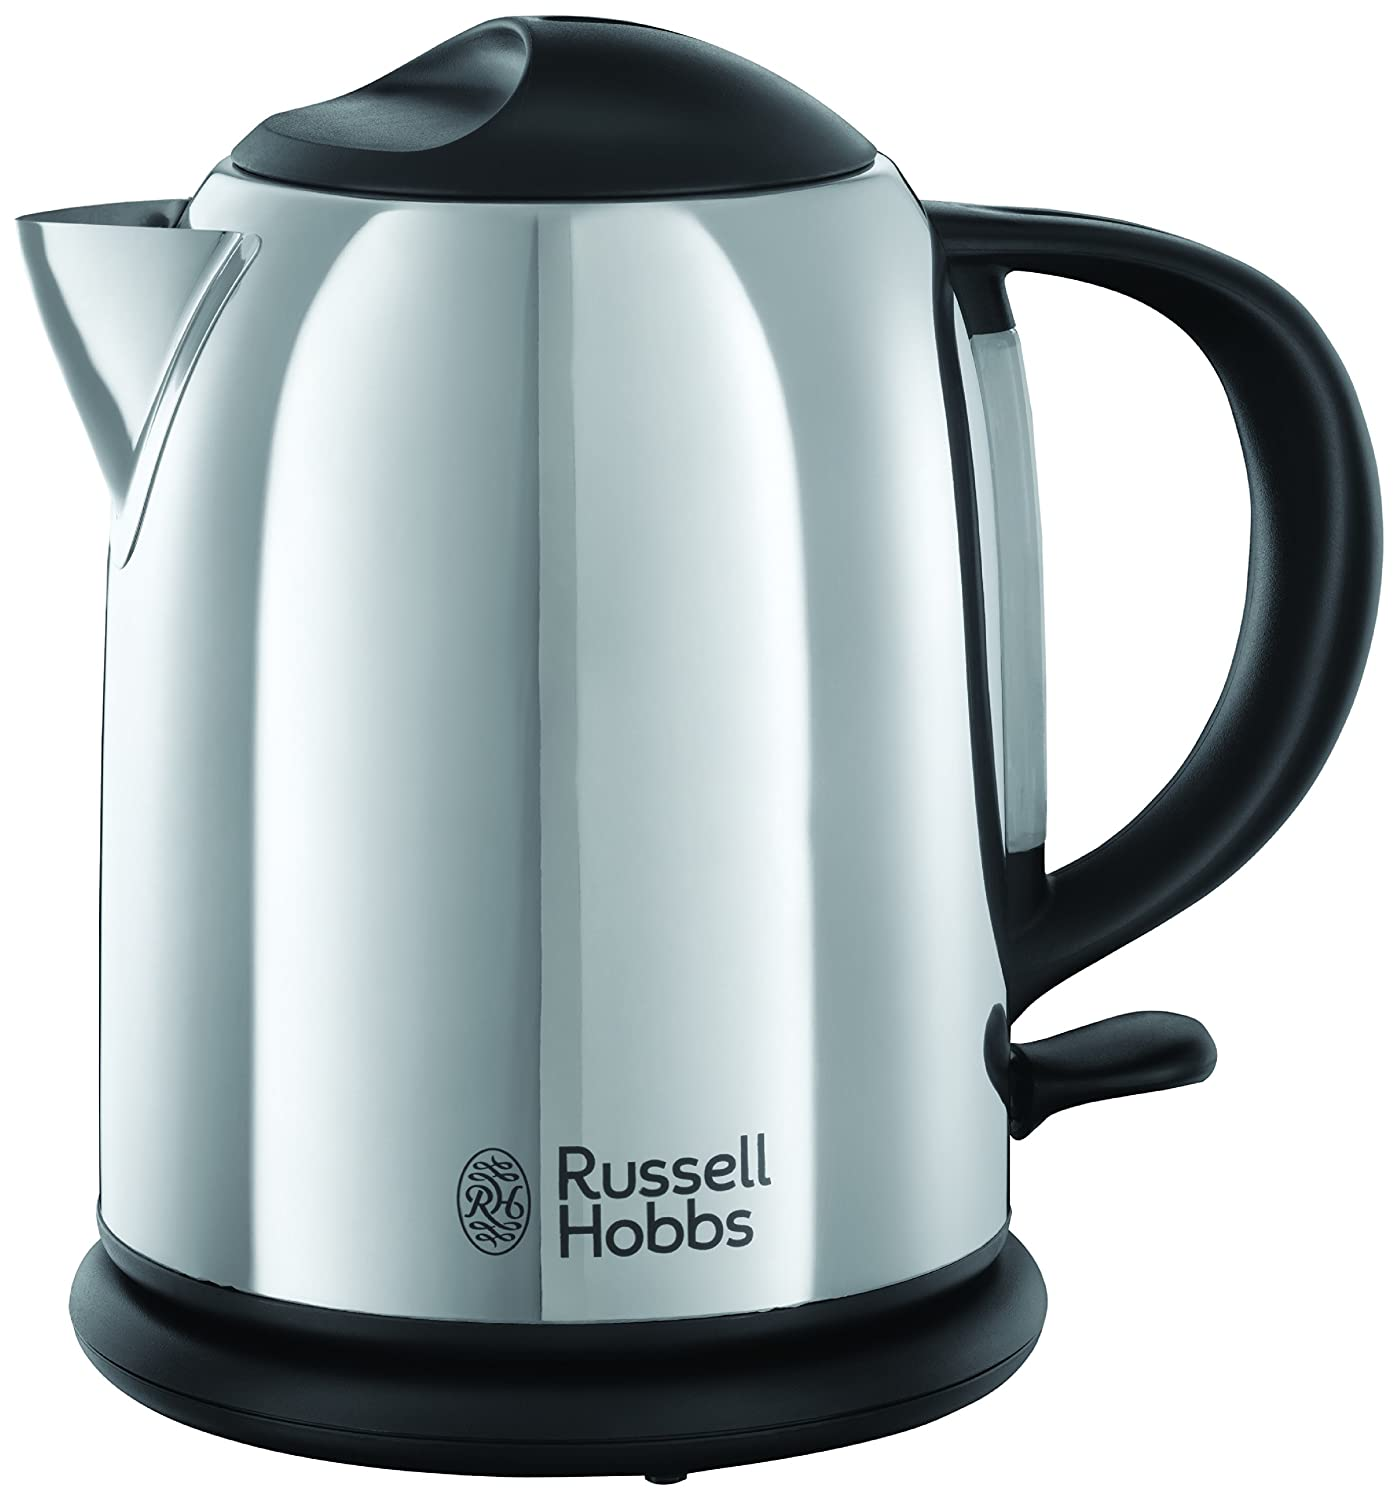 russell hobbs stainless steel kettle 1 litre electric fast. Black Bedroom Furniture Sets. Home Design Ideas